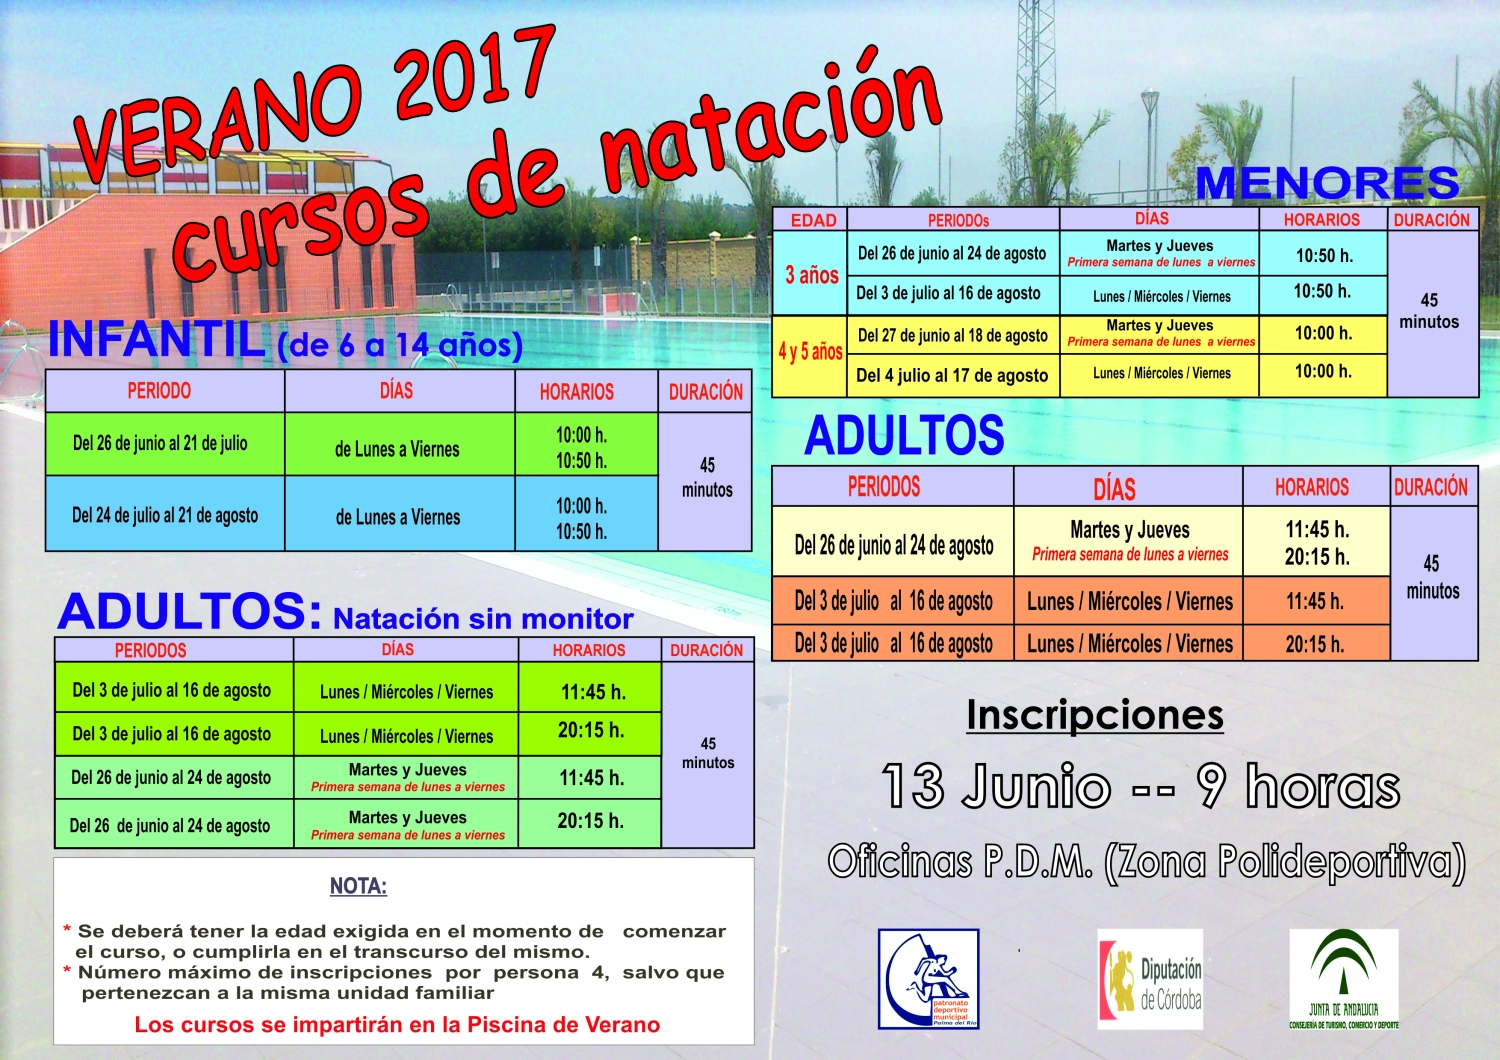 https://www.palmadelrio.es/sites/default/files/natacion_verano_2017_jpeg_valido.jpg